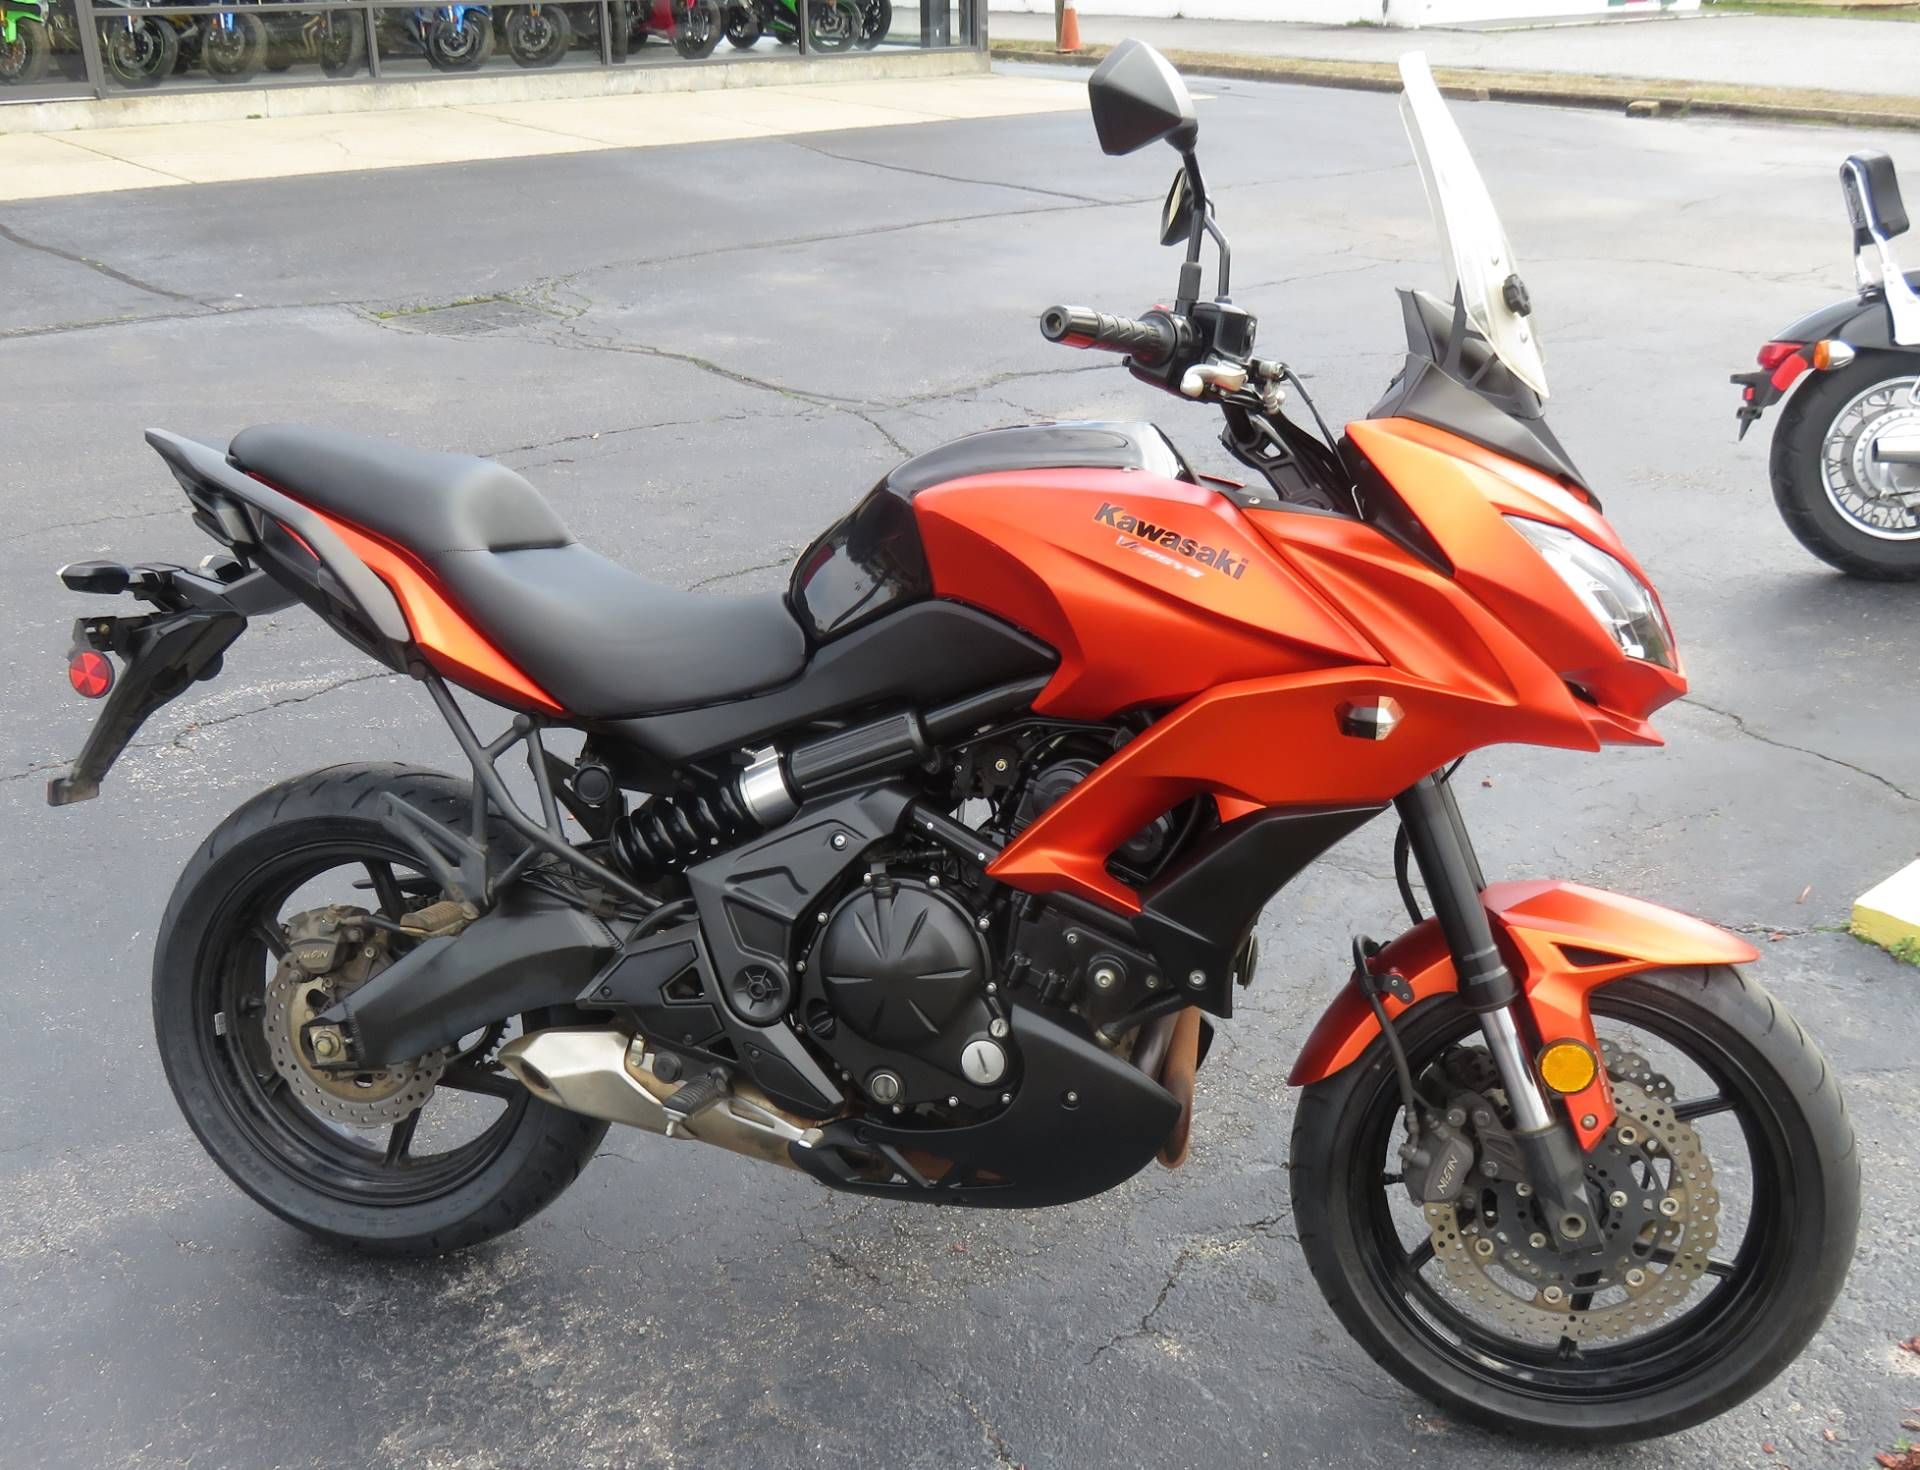 2016 Kawasaki Versys 650 ABS in Virginia Beach, Virginia - Photo 1